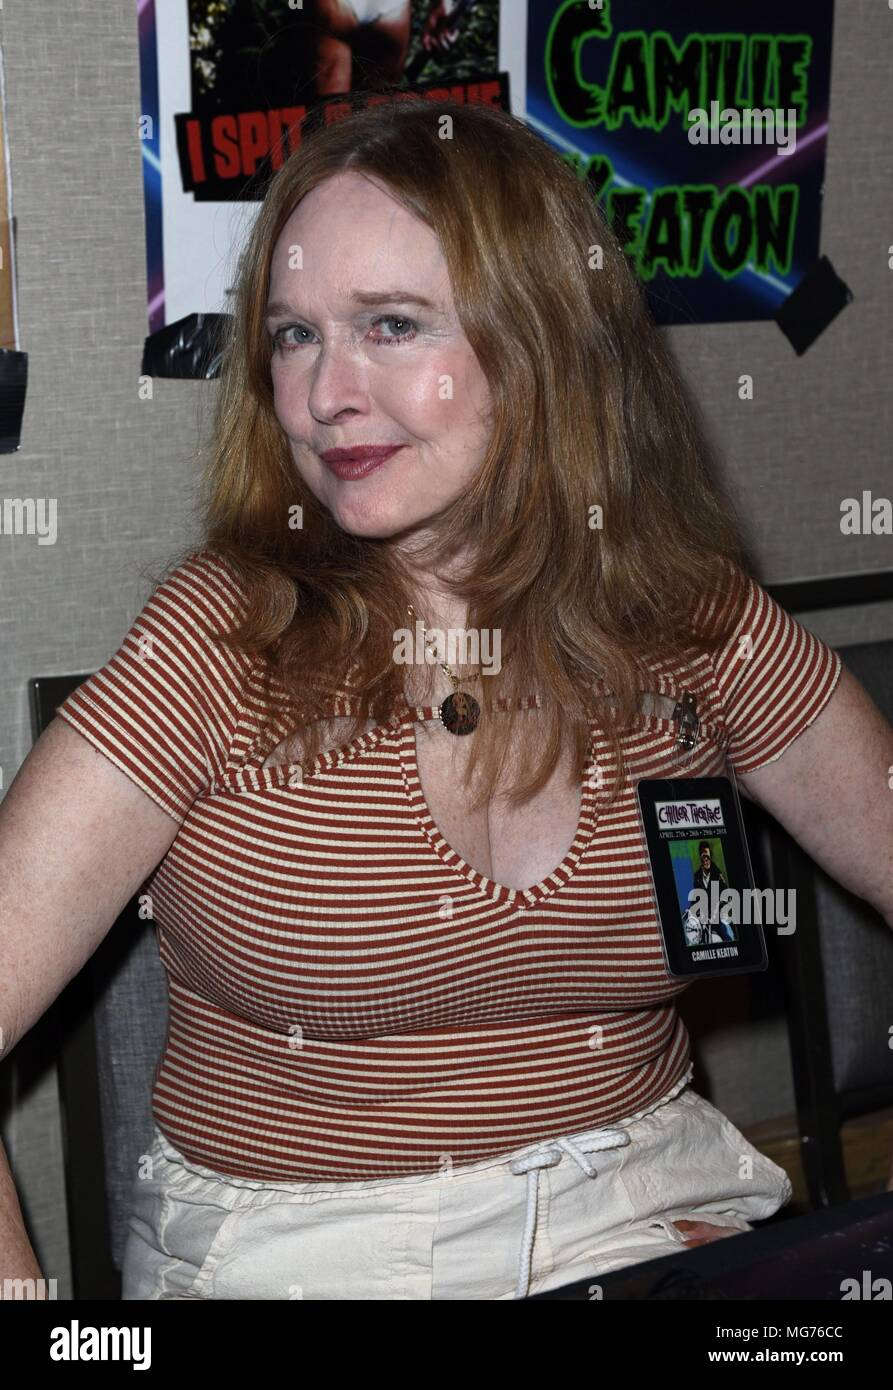 Camille Keaton nude (55 photos), Pussy, Hot, Boobs, braless 2019